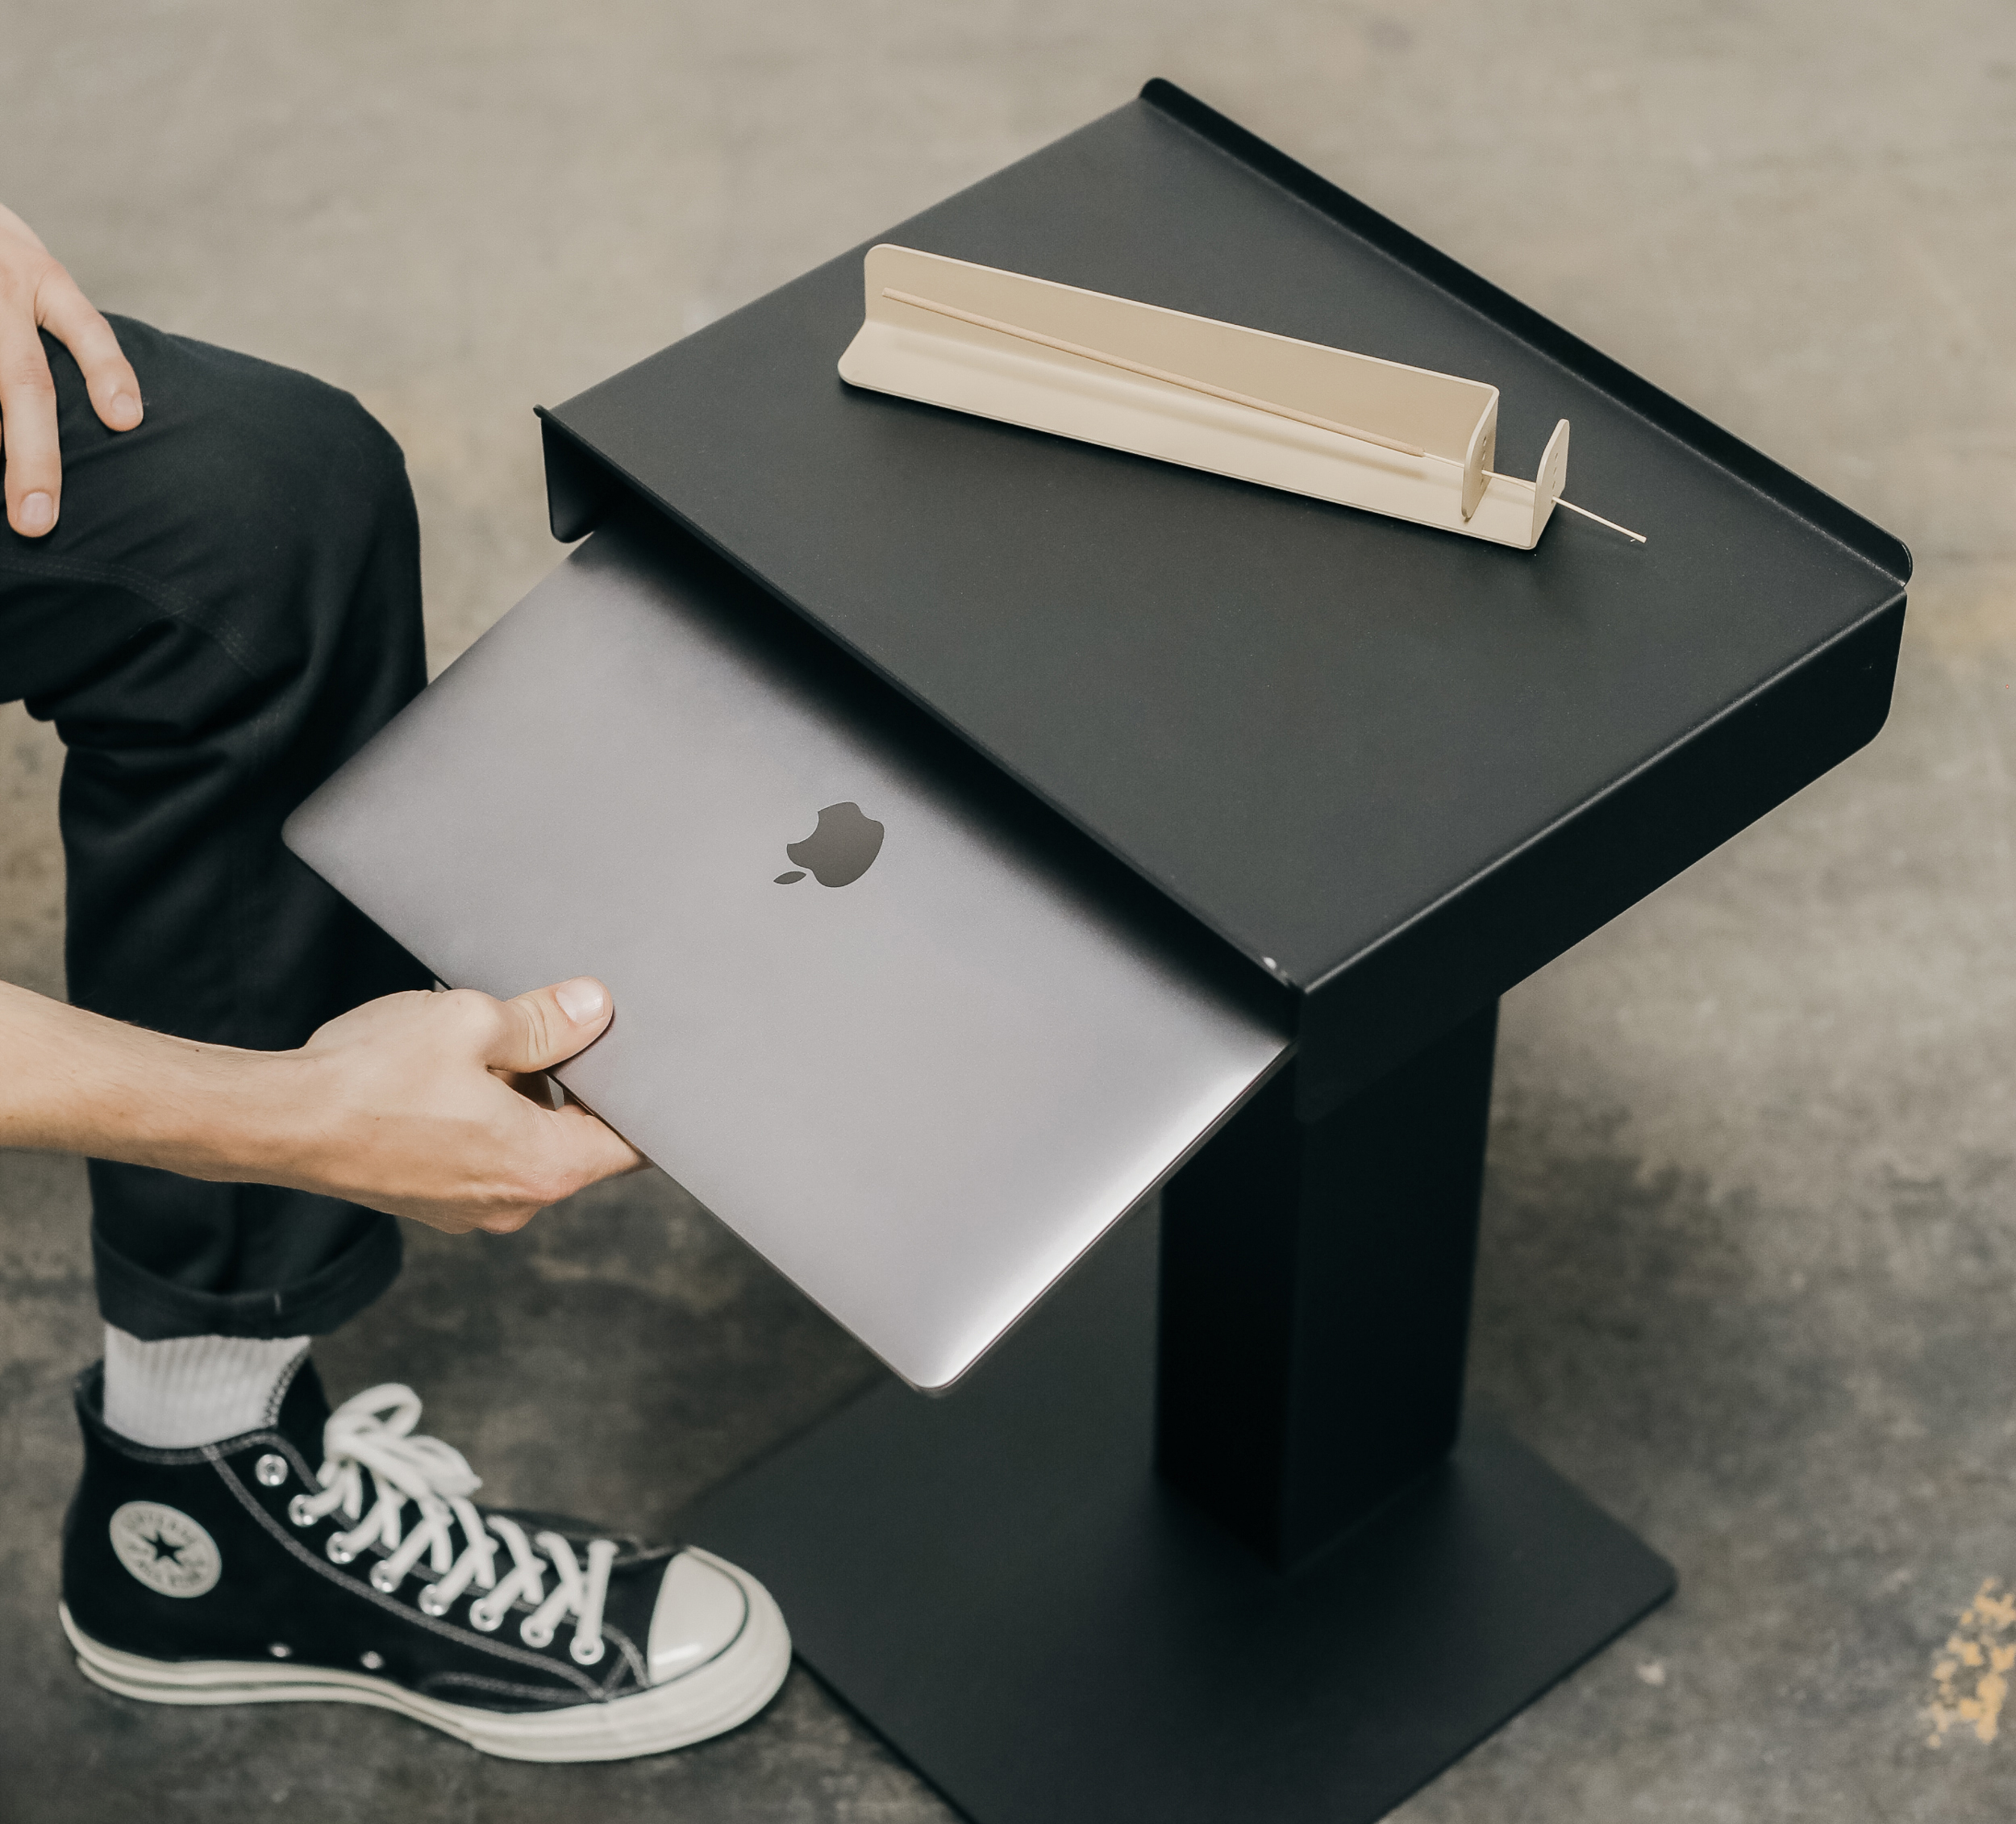 The new side table from BASE